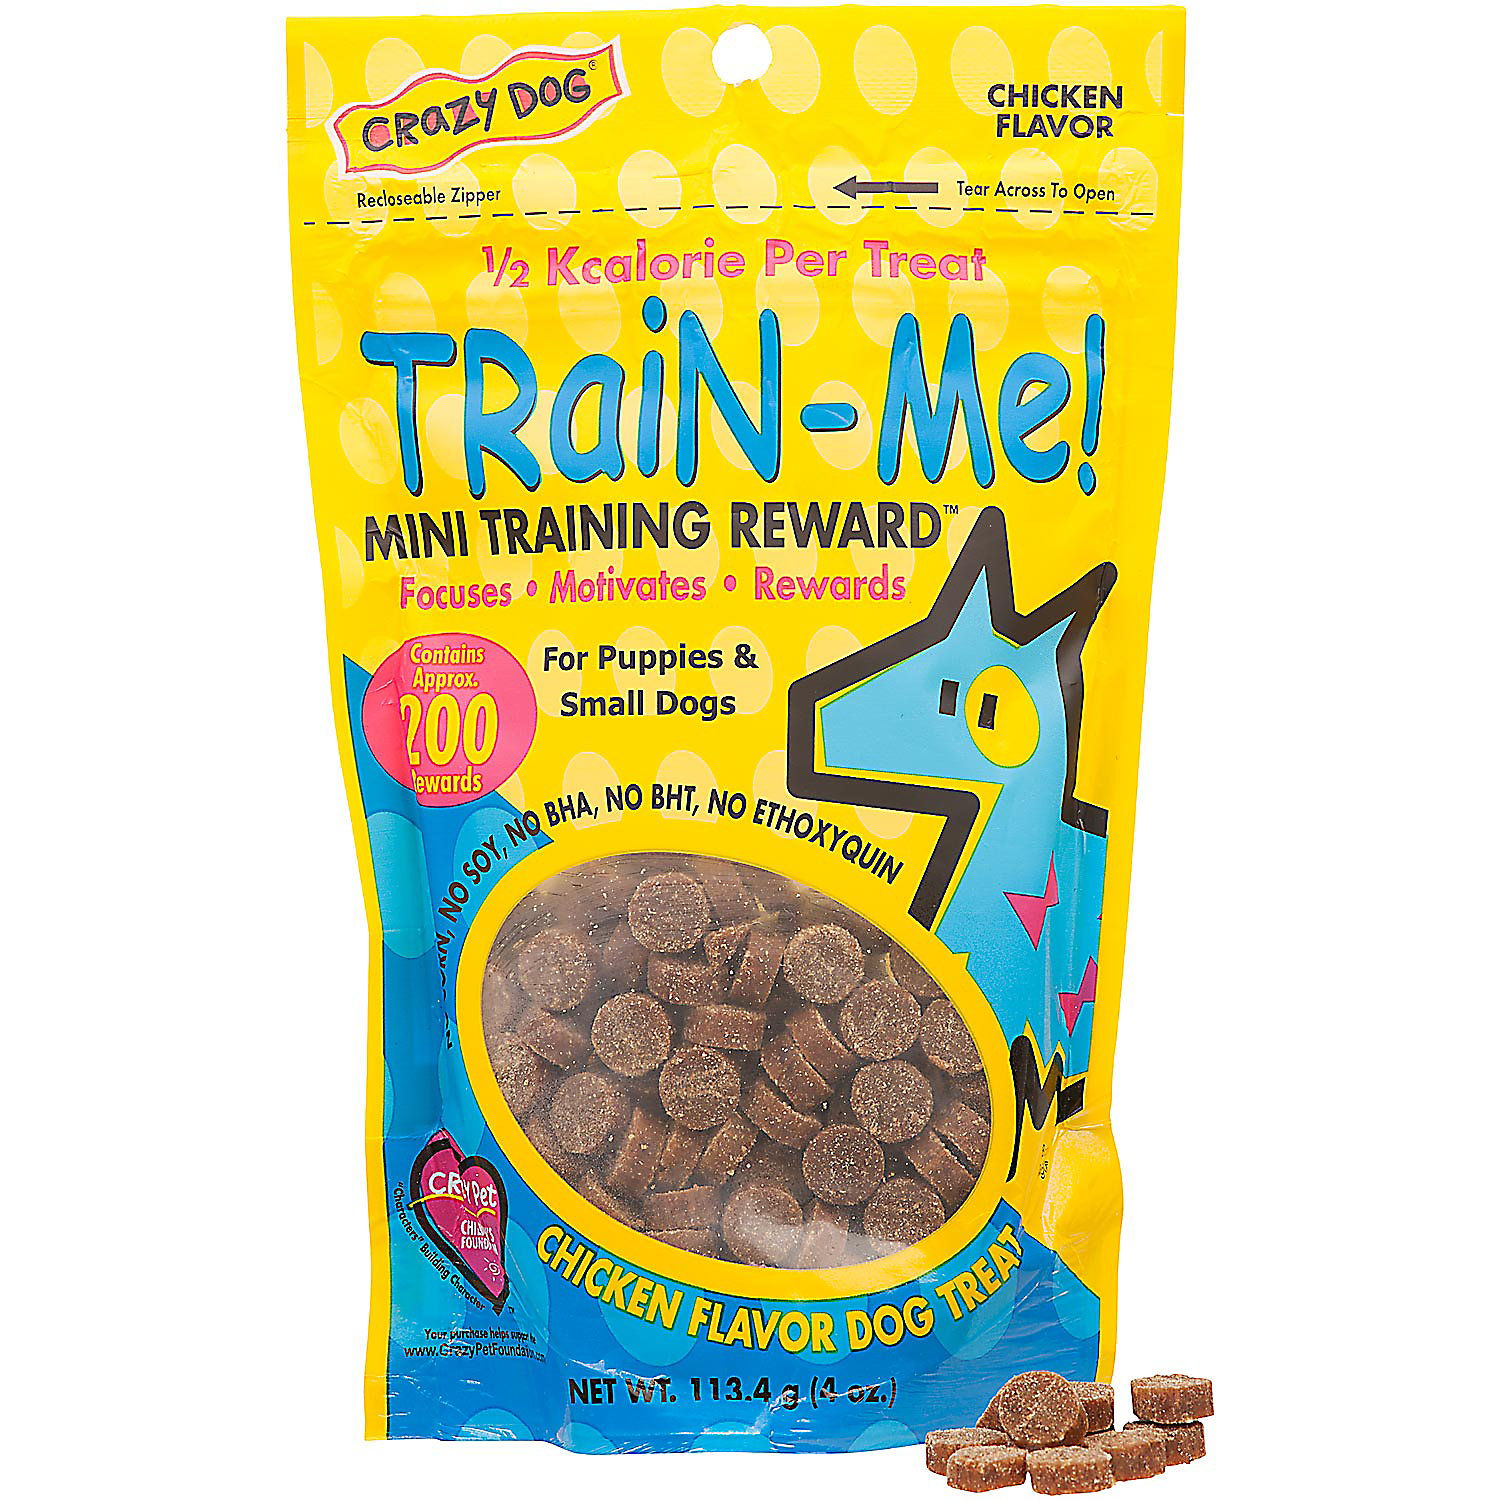 Crazy Dog Train Me Mini Training Reward Chicken Dog Treats 4 Oz Bag 200 Count.